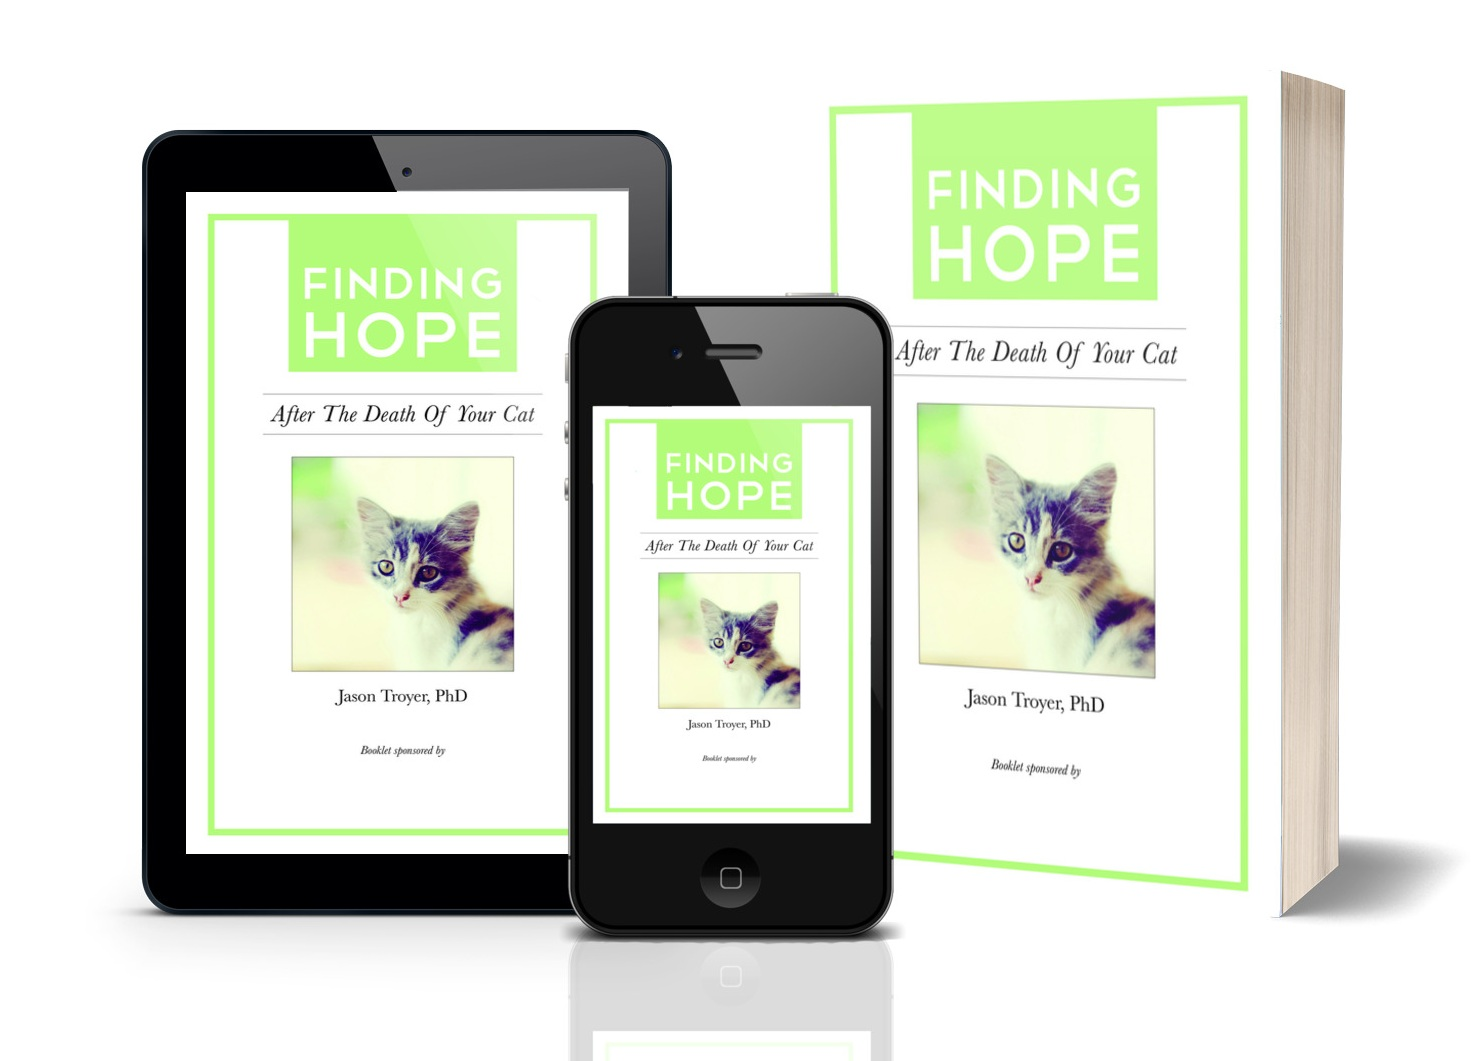 Want my free Loss of a Cat e-booklet? - Complete the form below